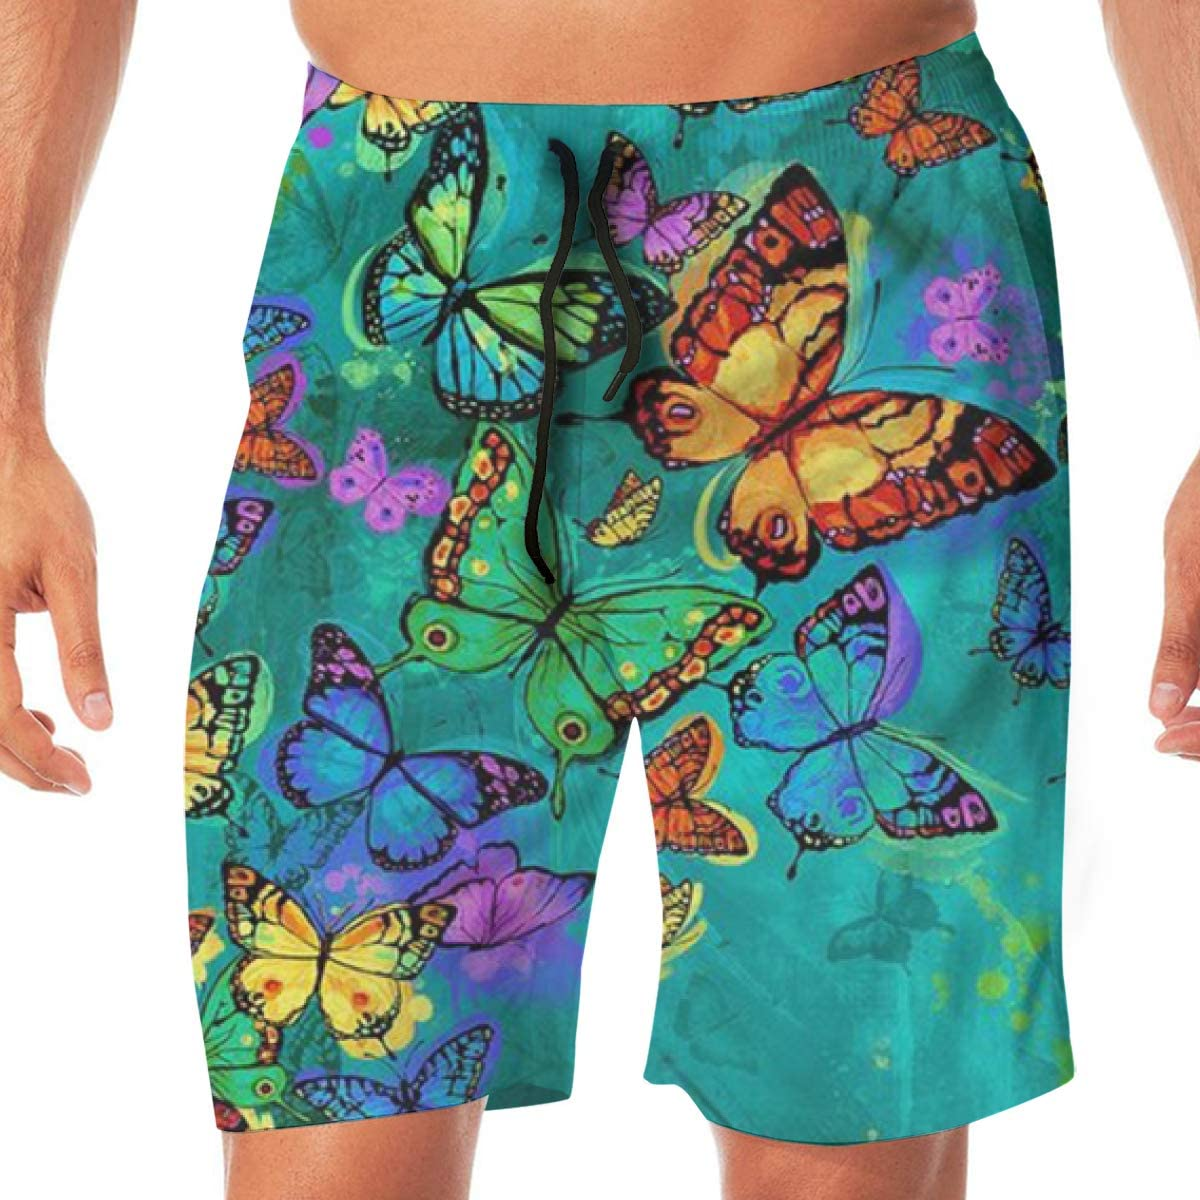 Mens Shorts Trunk Summer Pockets Green Watercolor Butterfly Swim Beach Athletic Quick Dry Beachwear Boardshort